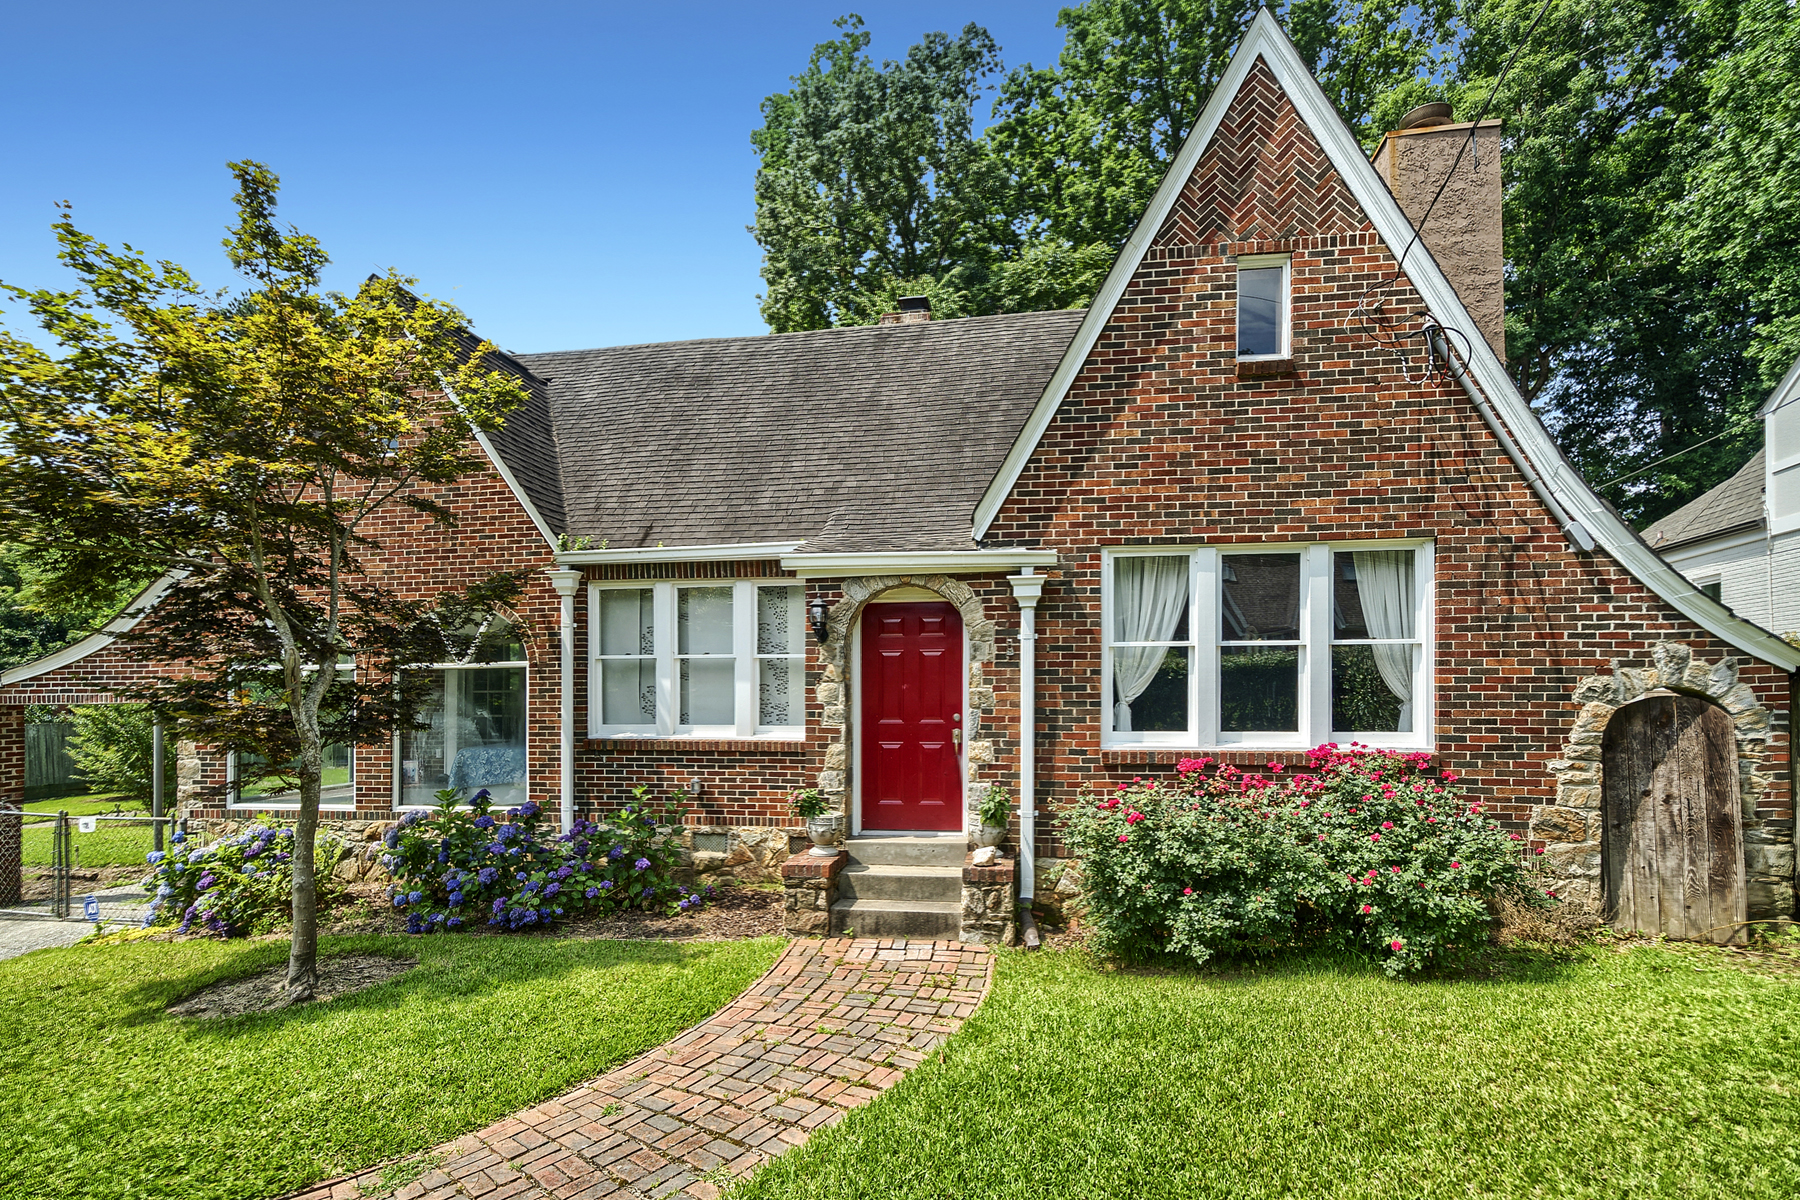 Single Family Home for Sale at Storybook Tudor On Half Acre On One Of Morningside's Most Captivating Streets 1662 N Pelham Road NE Atlanta, Georgia 30324 United States